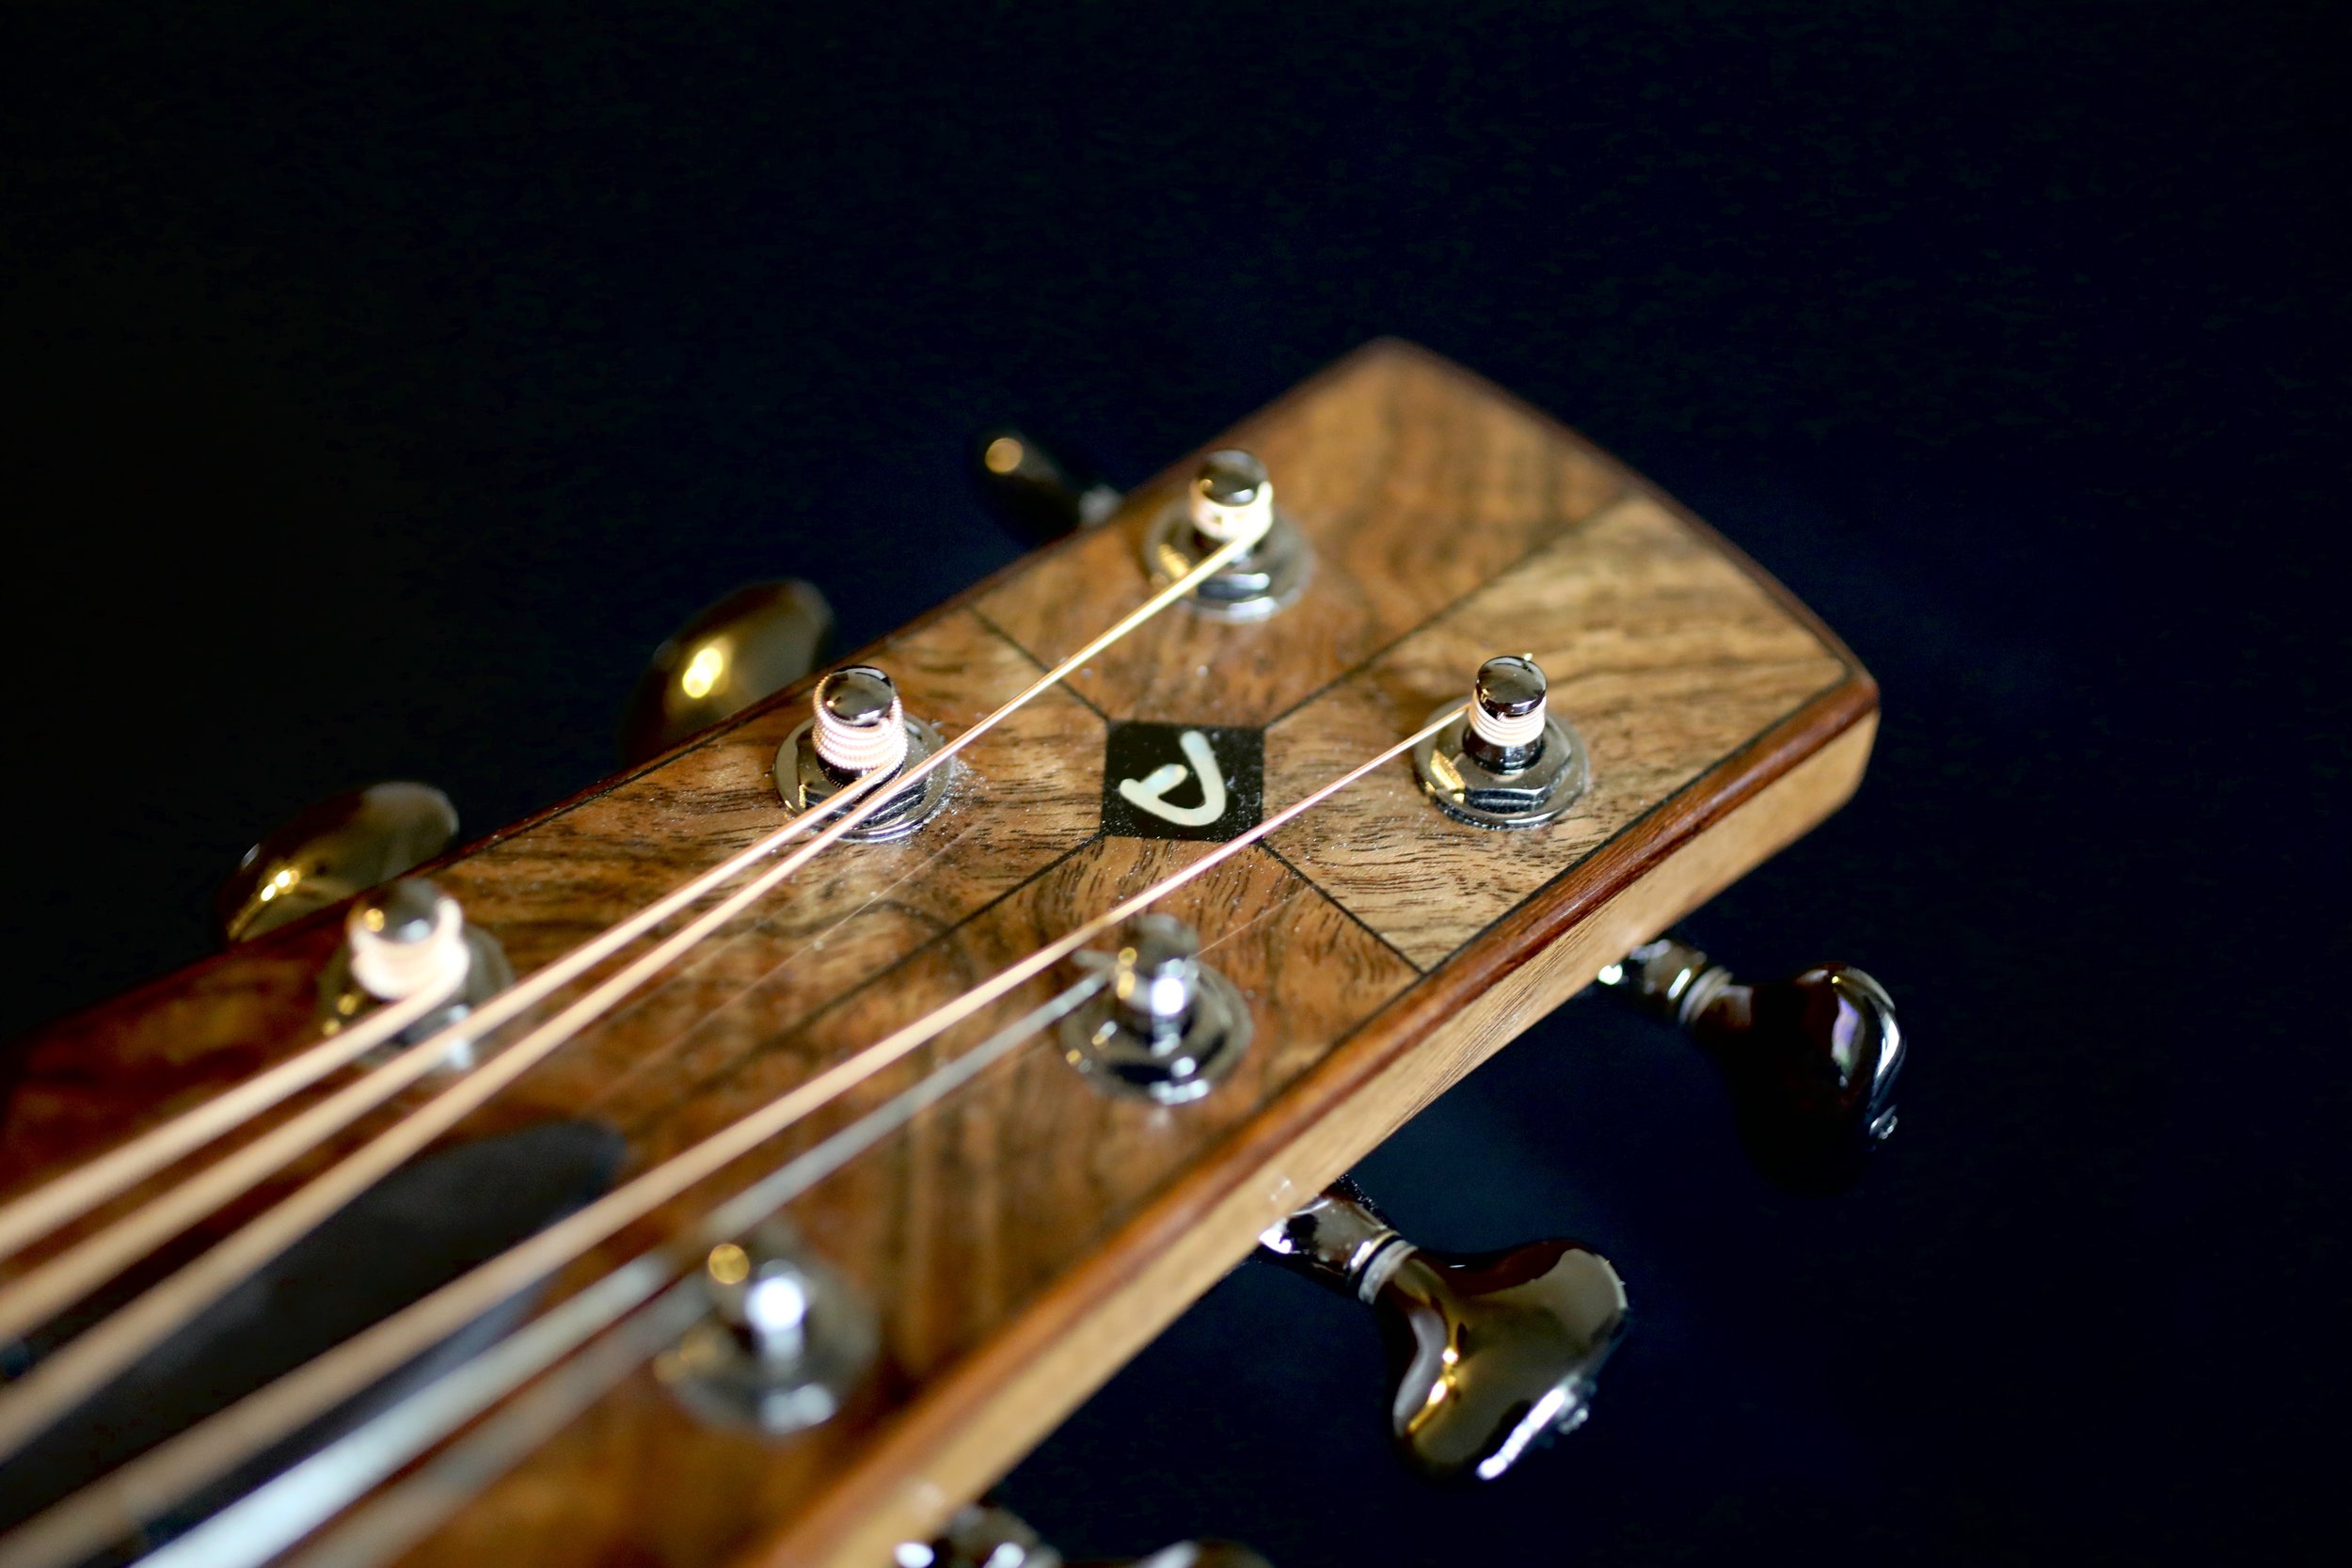 Four-Way Bookmatched Headstock with Decorative Binding